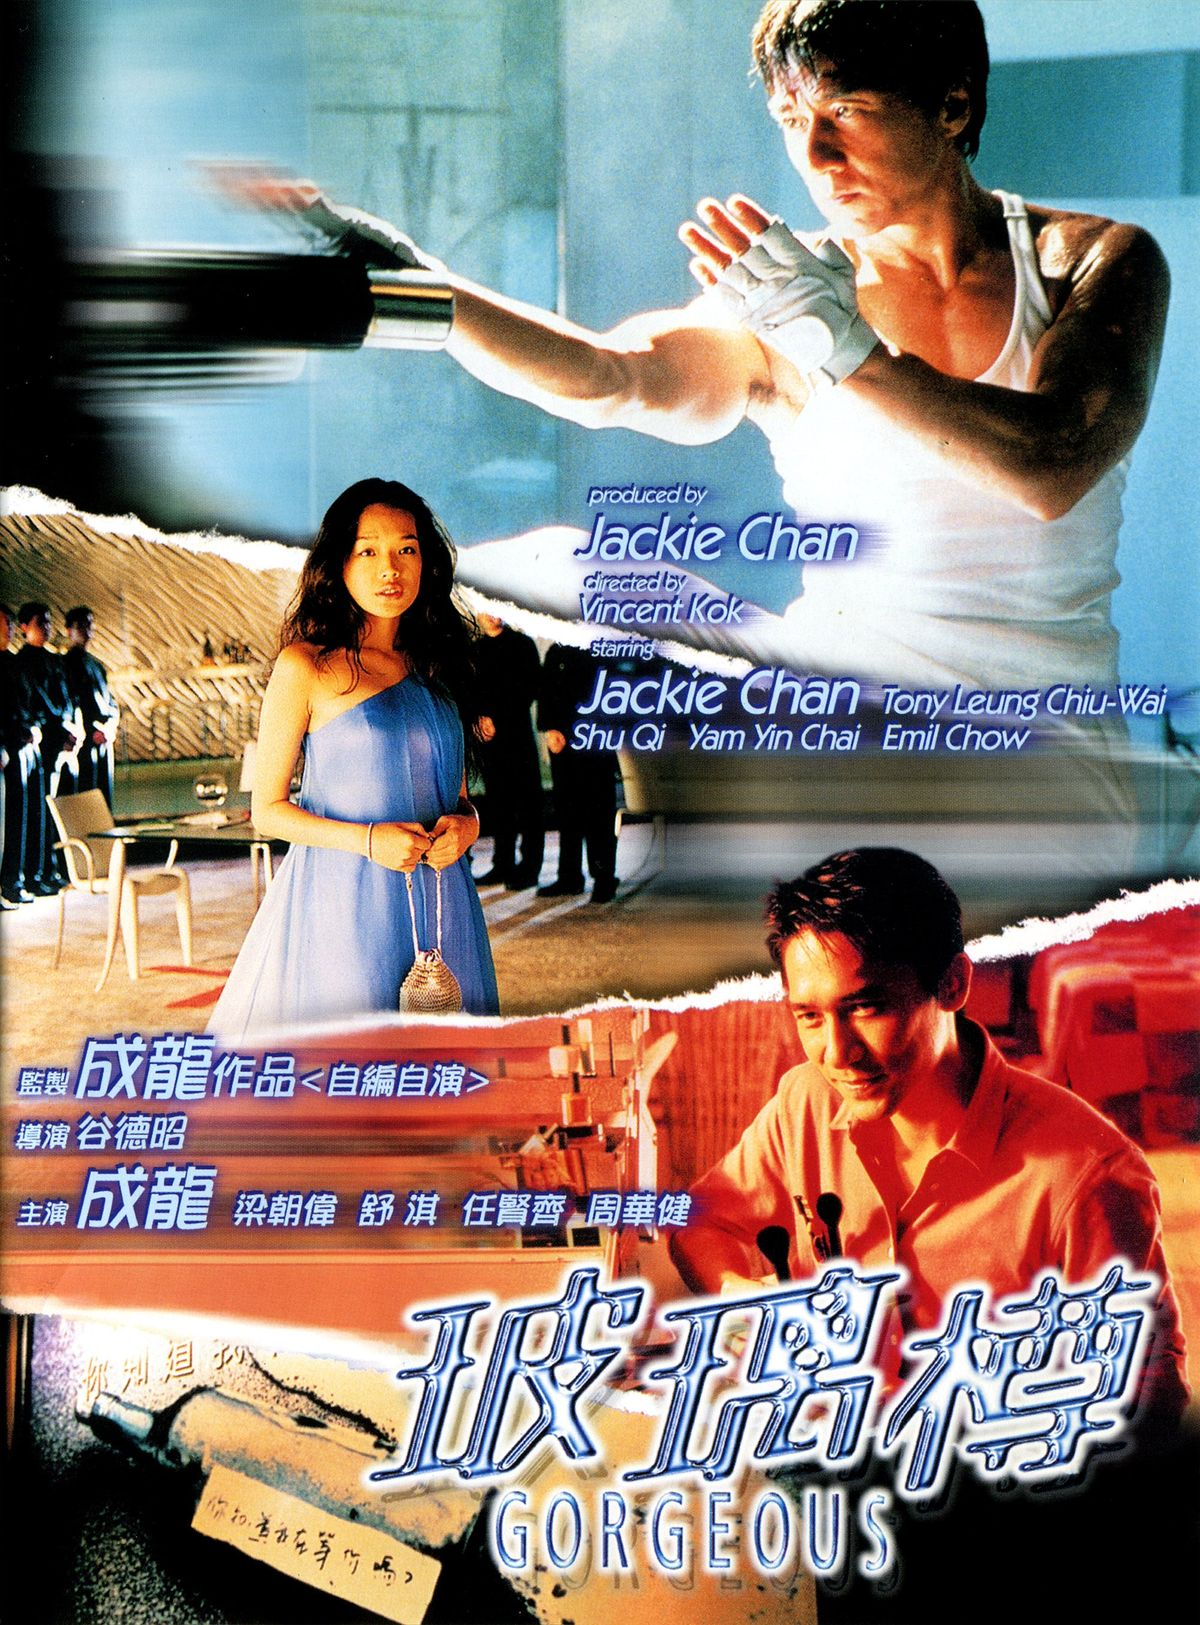 Ken Lo Best Movies, TV Shows and Web Series List